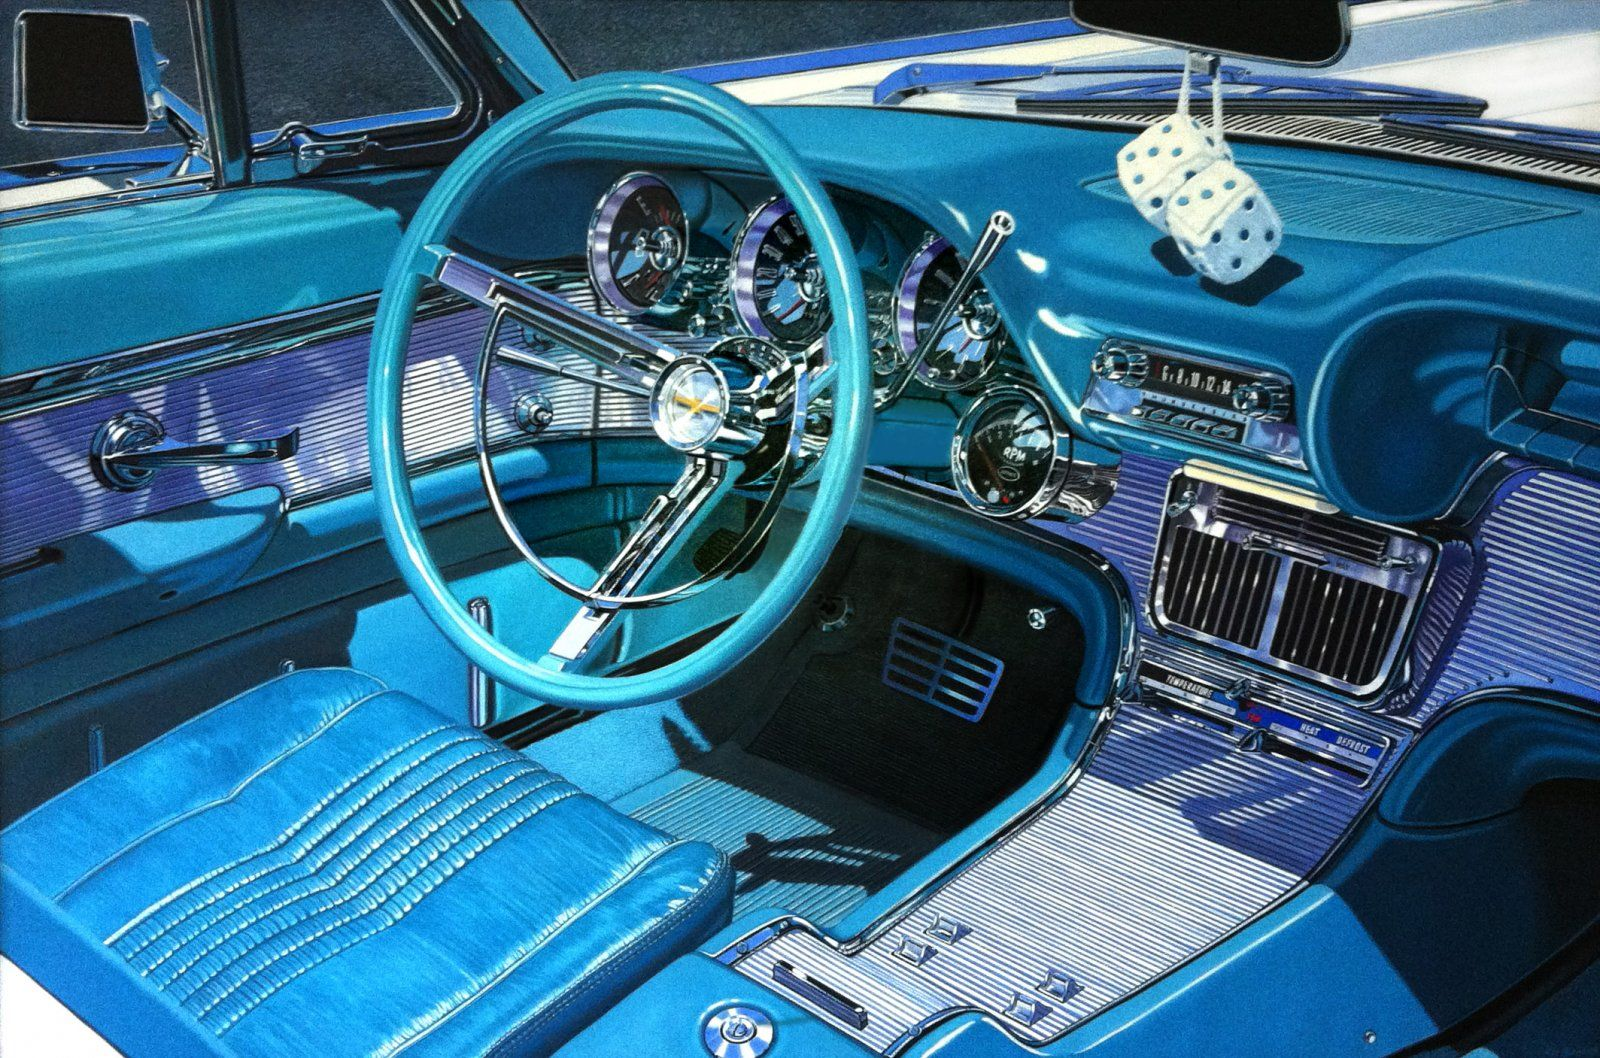 1600x1058 6237 57 thunderbird 2d automotive old car interior picture image digital. Black Bedroom Furniture Sets. Home Design Ideas